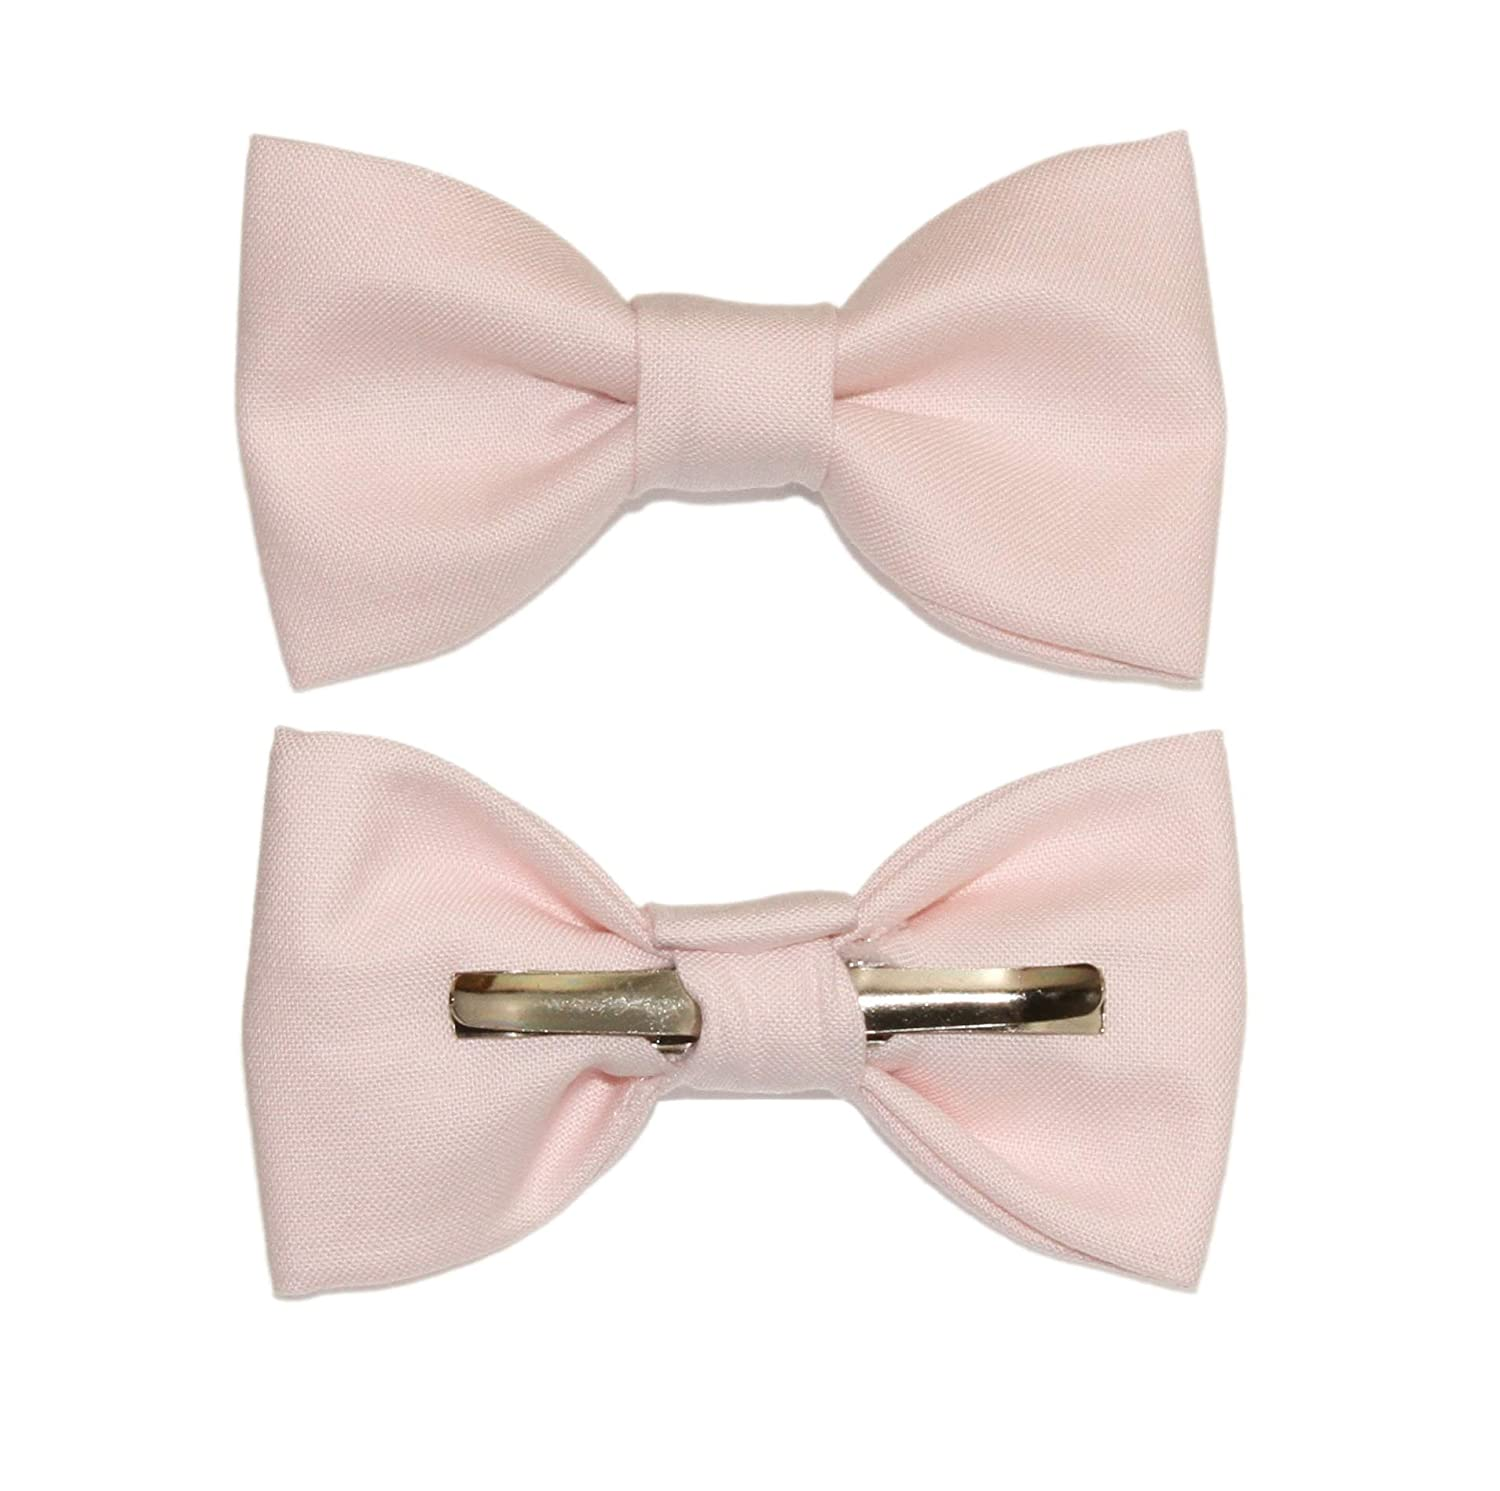 Toddler Boy 4T 5T Pearl Pink/Pale Pink Clip On Cotton Bow Tie amy2004marie 113288